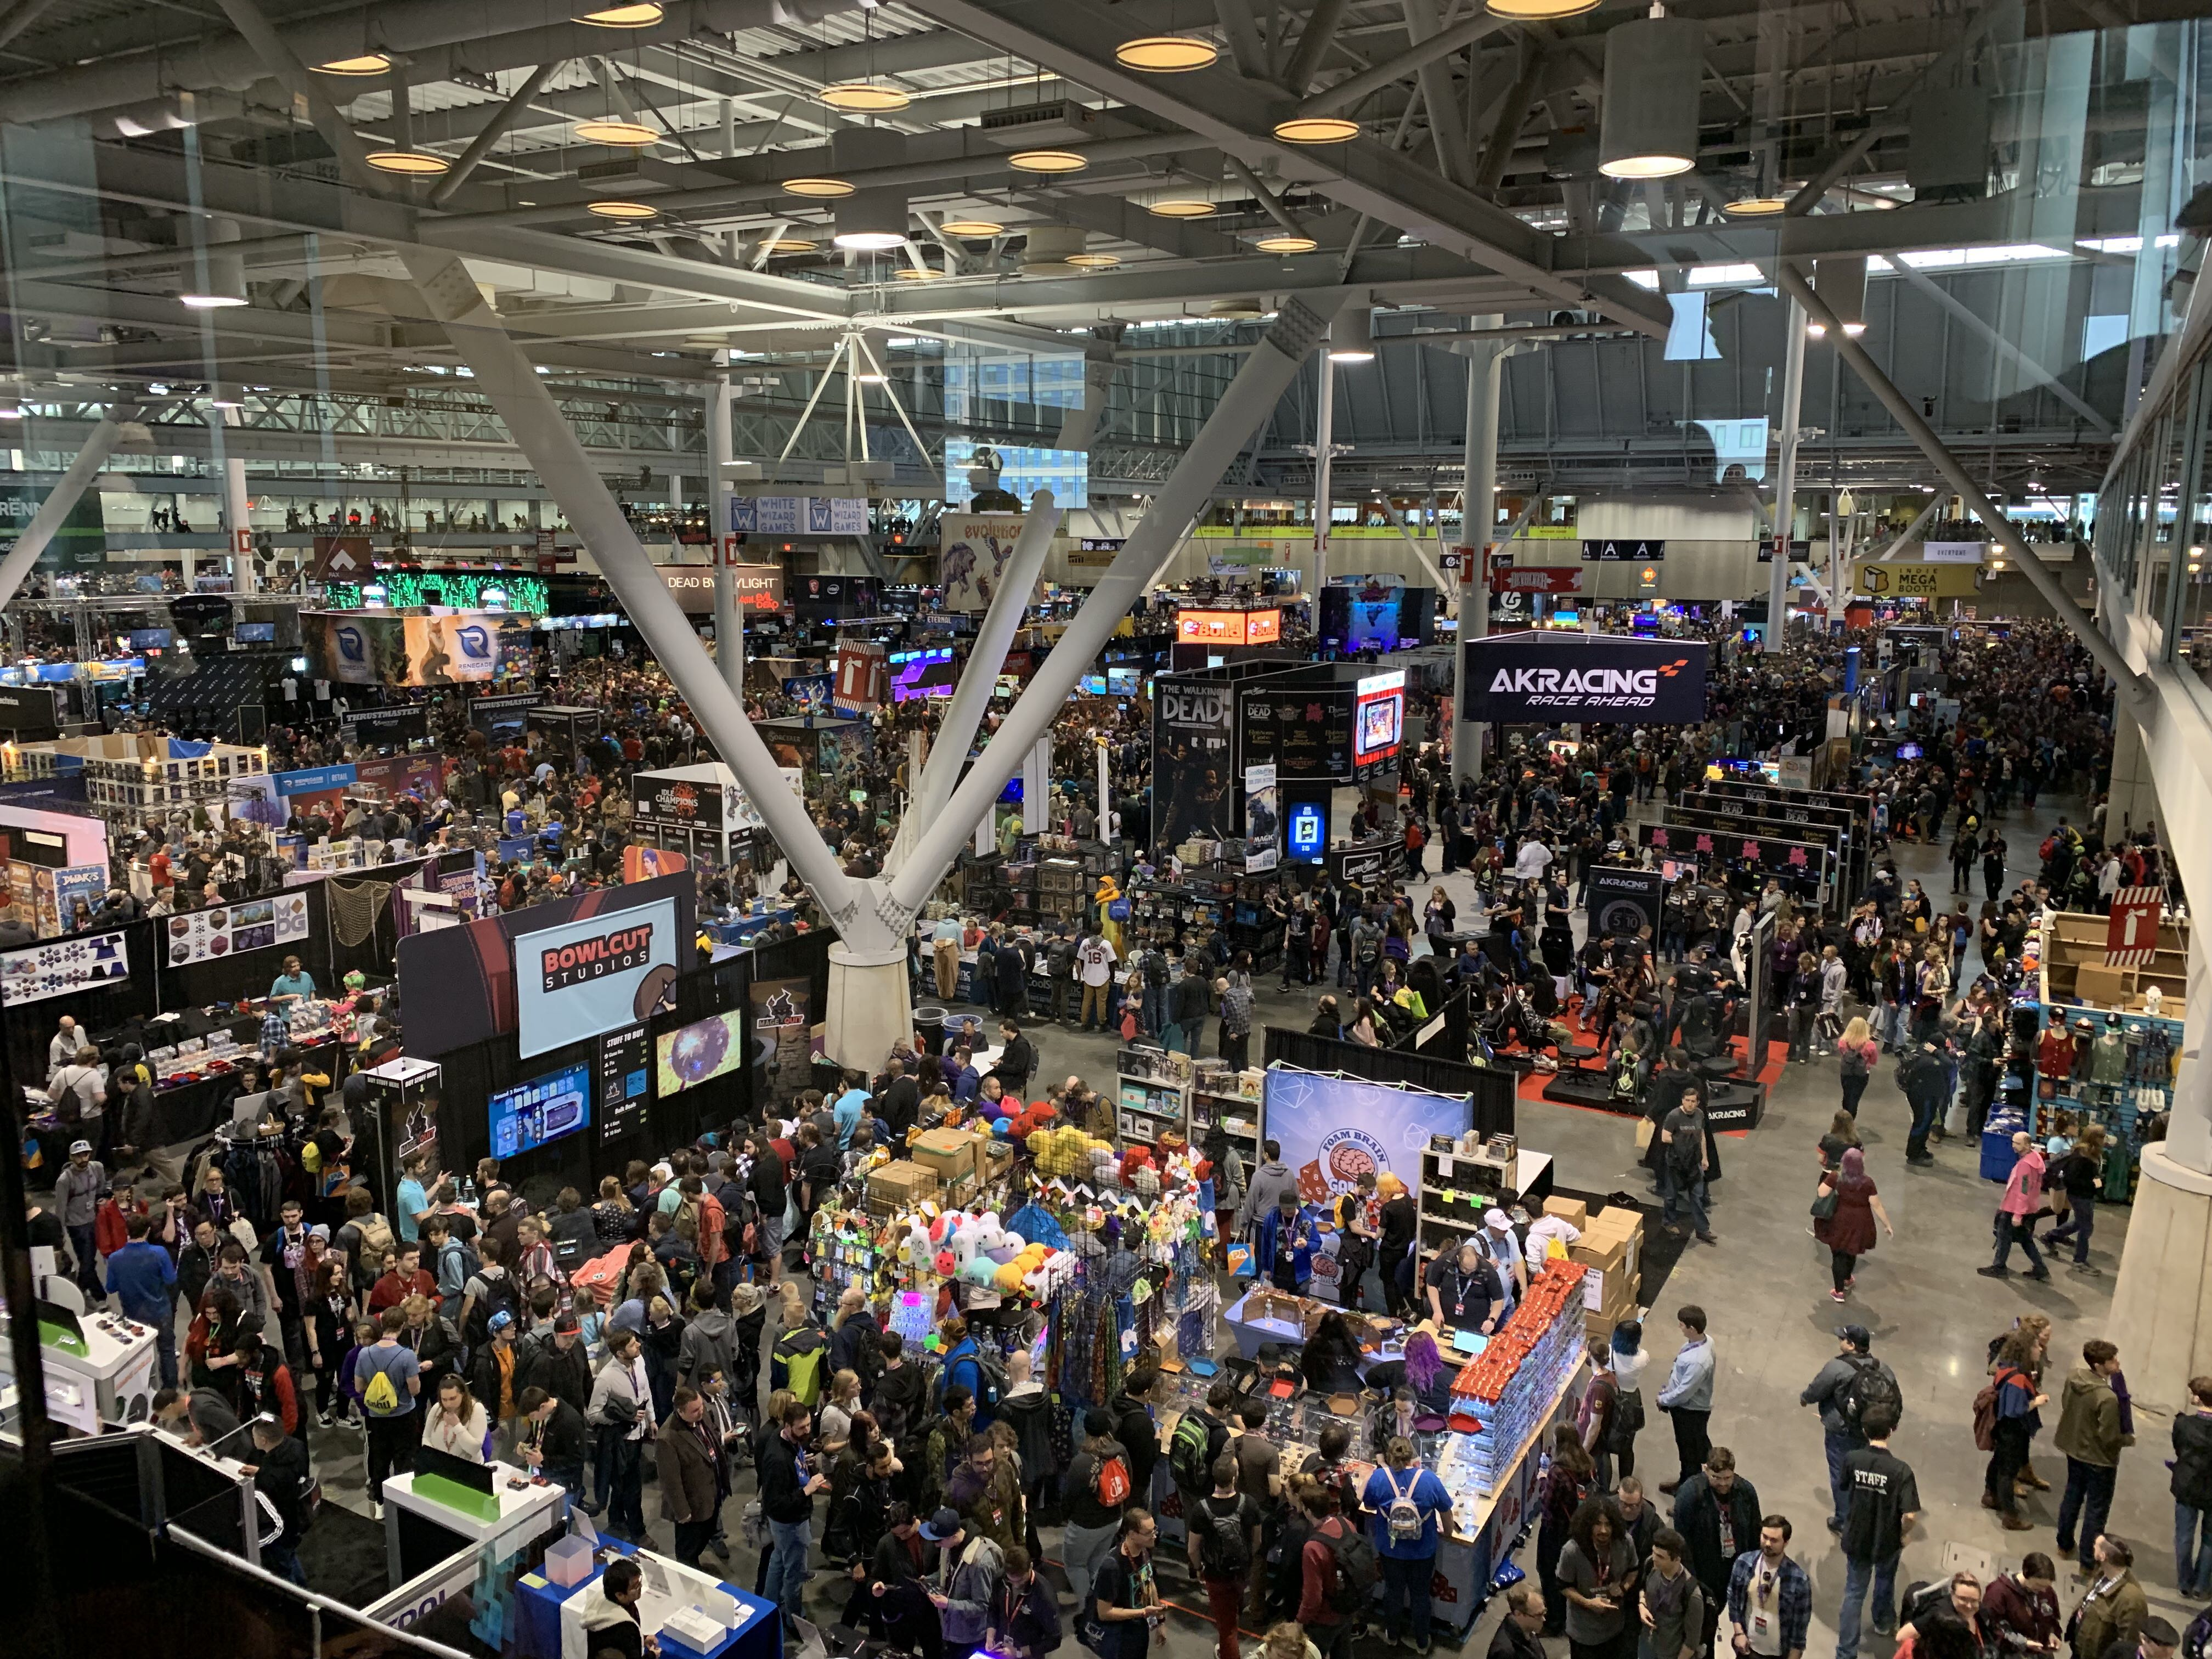 A quick look at some neat indie games I played at PAX East 2019 screenshot